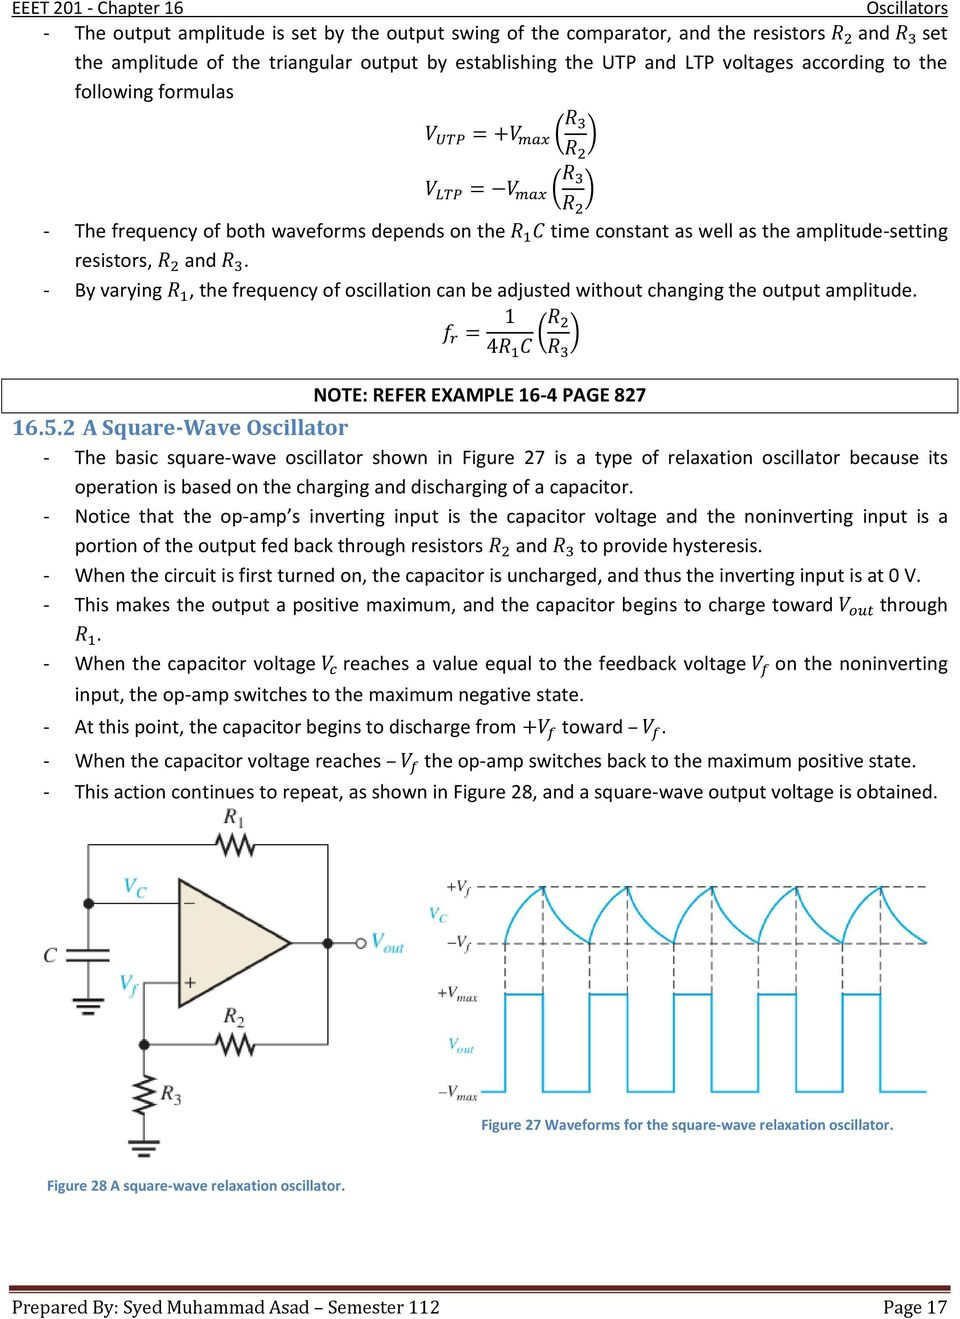 Chapter 16 Oscillators Pdf Op Amp Astable Multivibrator Oscillator Circuit By Varying The Frequency Of Oscillation Can Be Adjusted Without Changing Output Amplitude